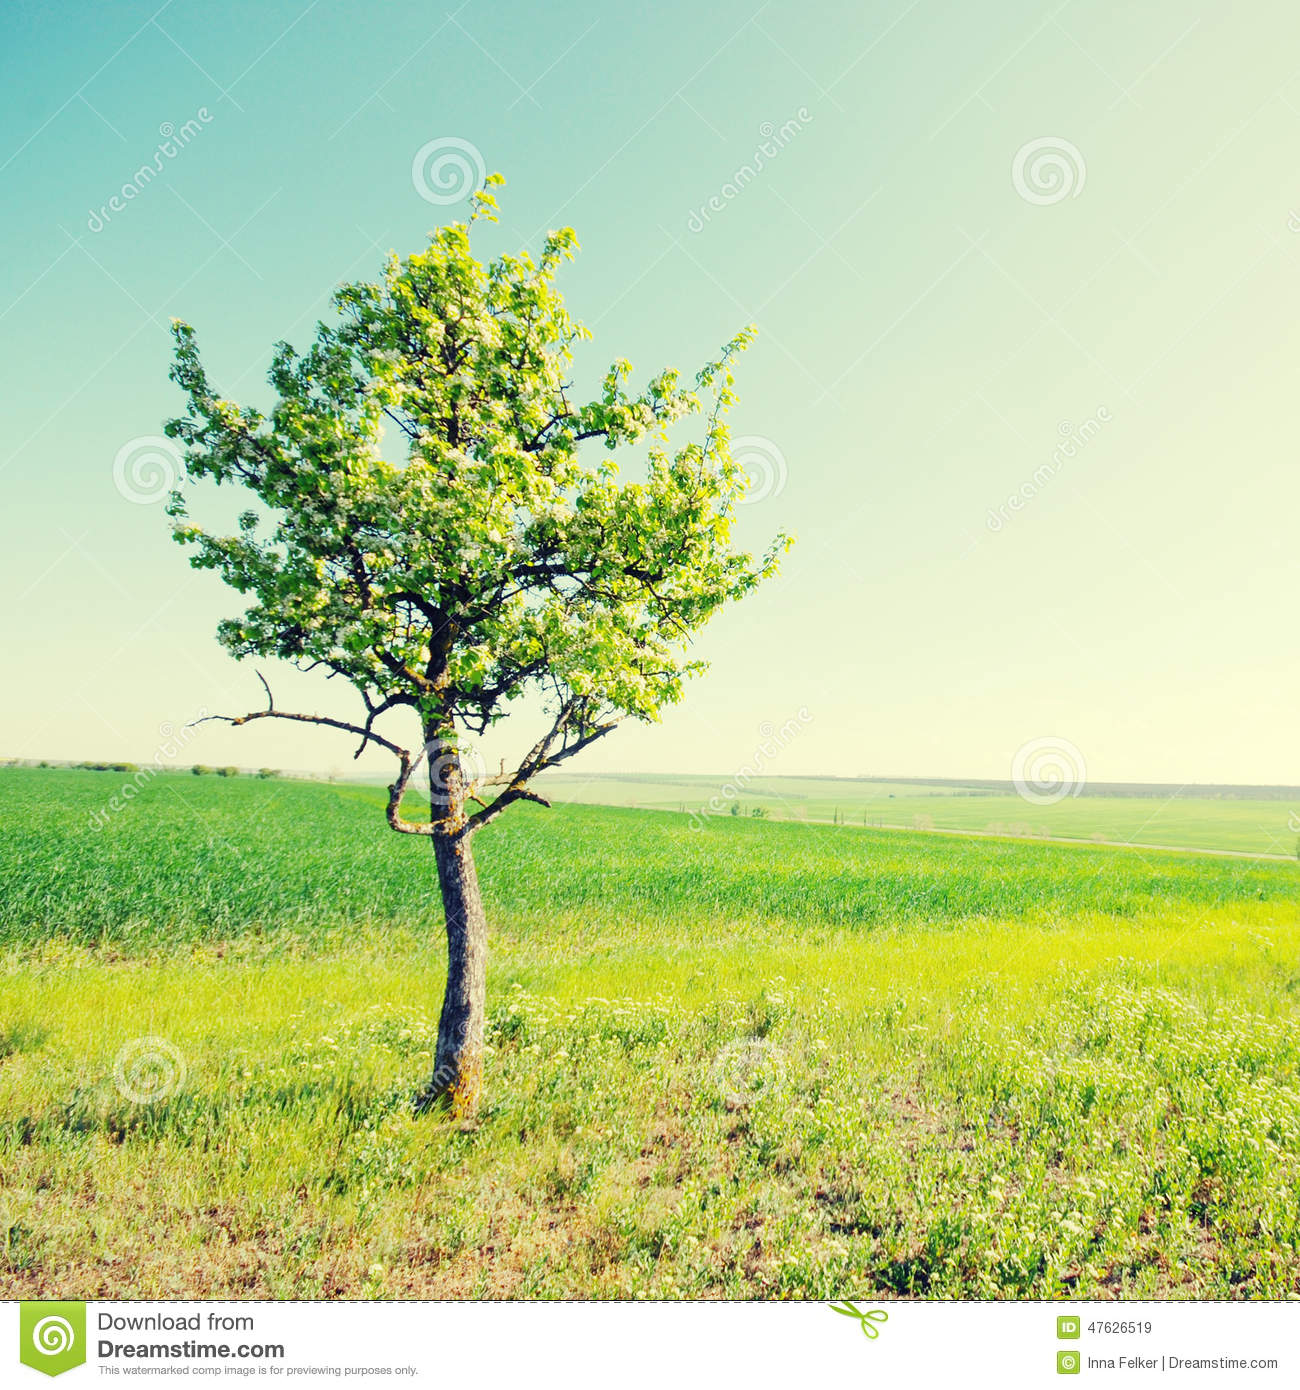 Solitary Tree On Green Grassy Field And Blue Sky Background Stock.